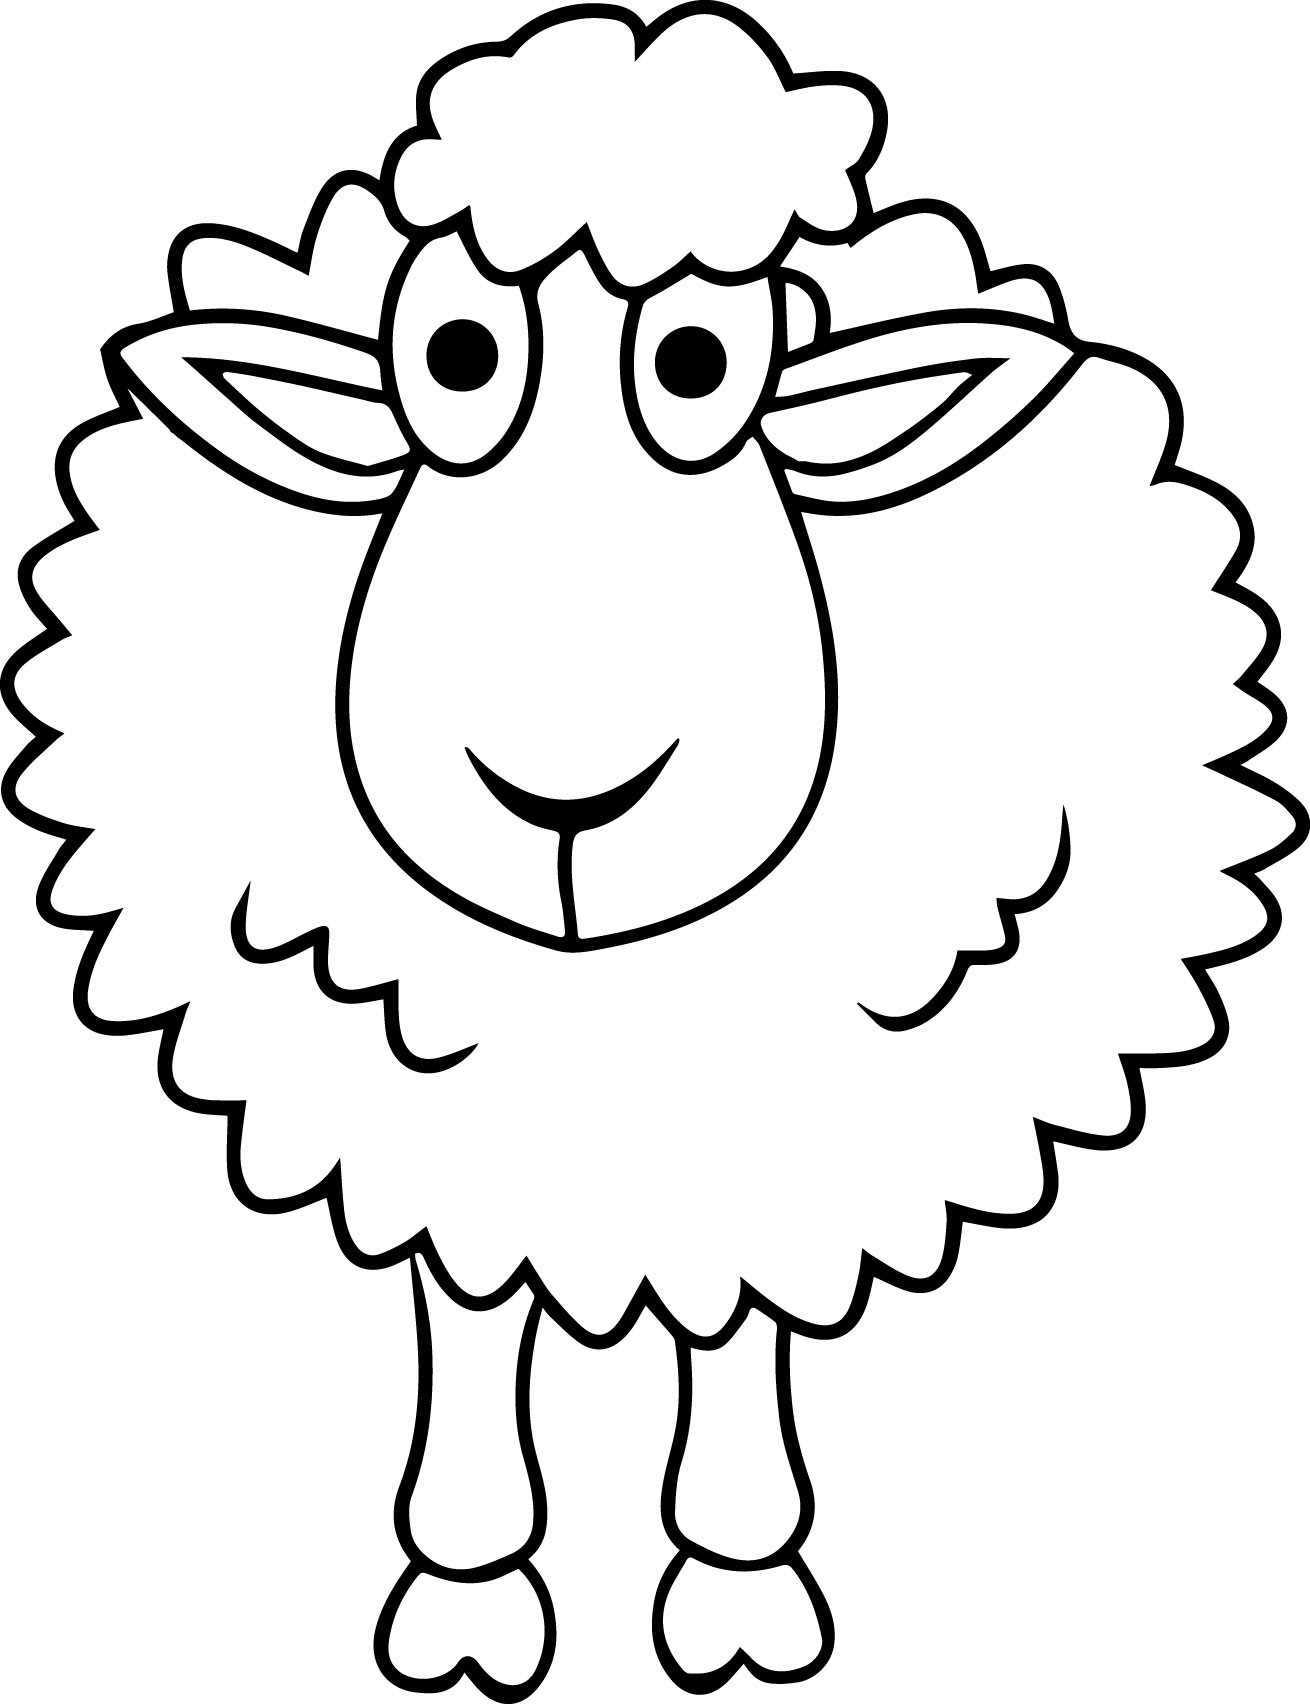 Free Printable Pictures Of Sheep - Free Printable Pictures Of Sheep